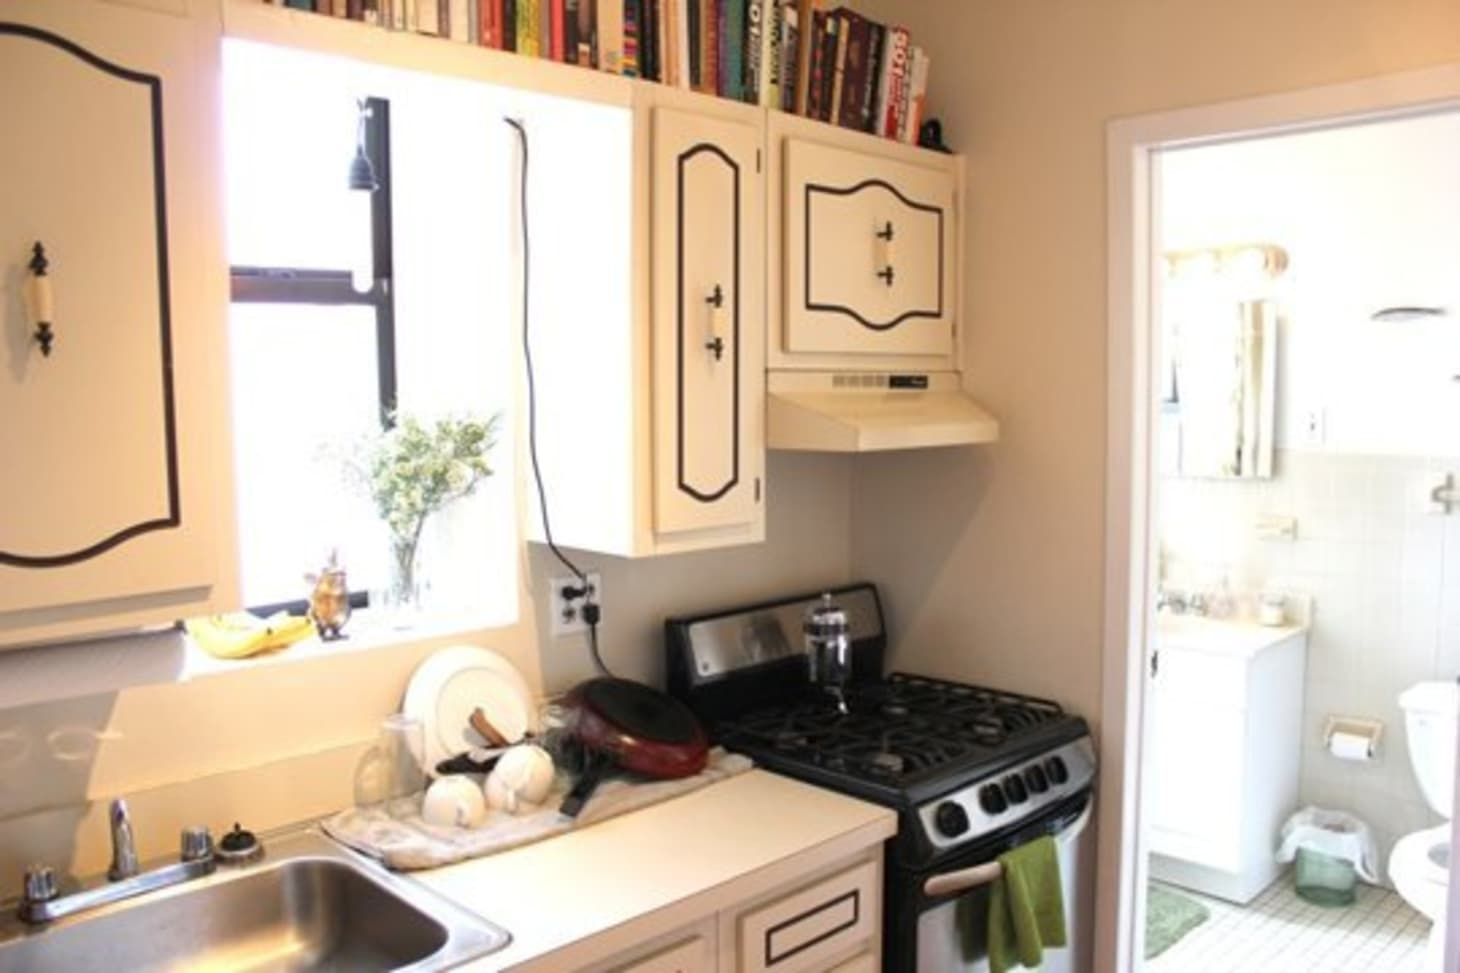 Amazing 7 Things To Do With That Awkward Space Above The Cabinets Download Free Architecture Designs Itiscsunscenecom